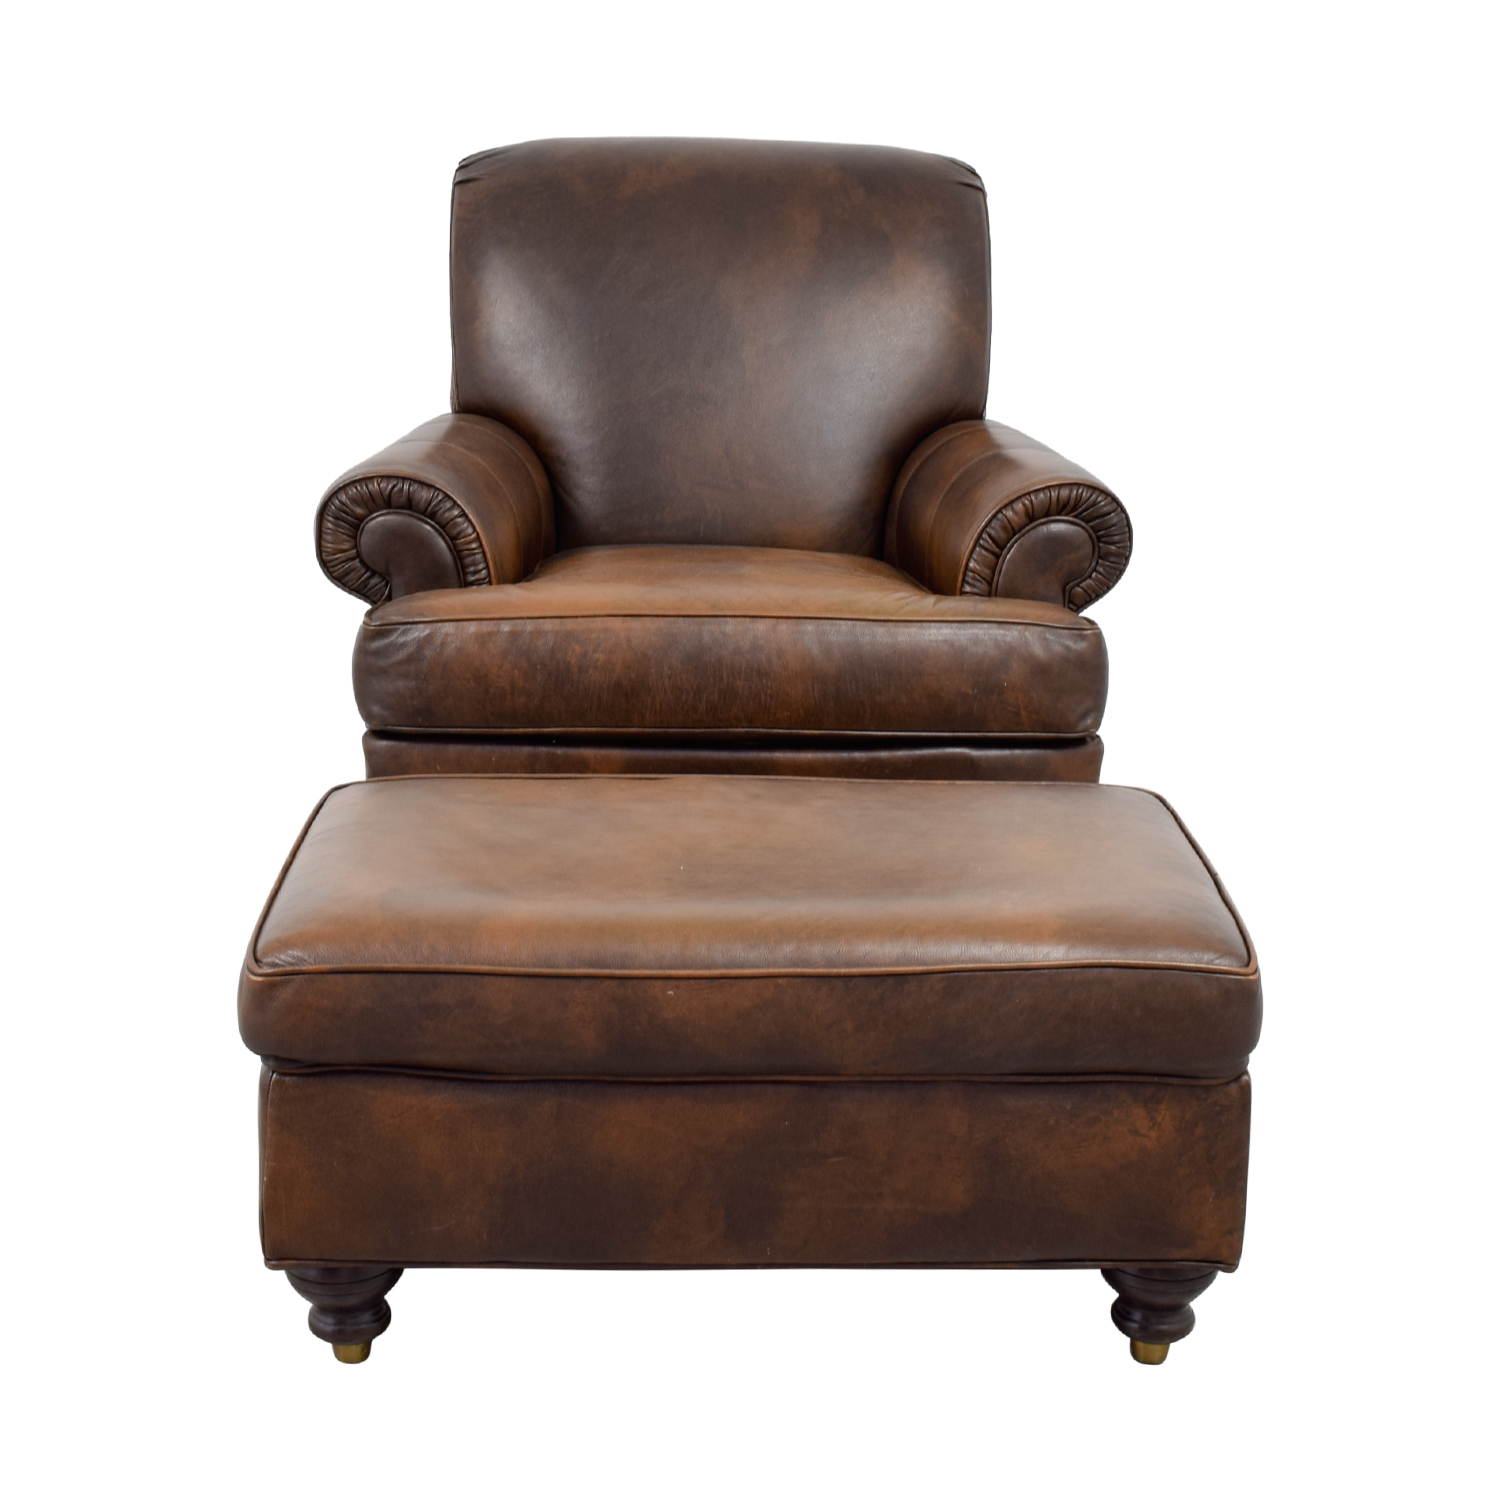 Leather Chairs With Ottoman 84 Off Ethan Allen Ethan Allen Brown Leather Chair Ottoman Chairs